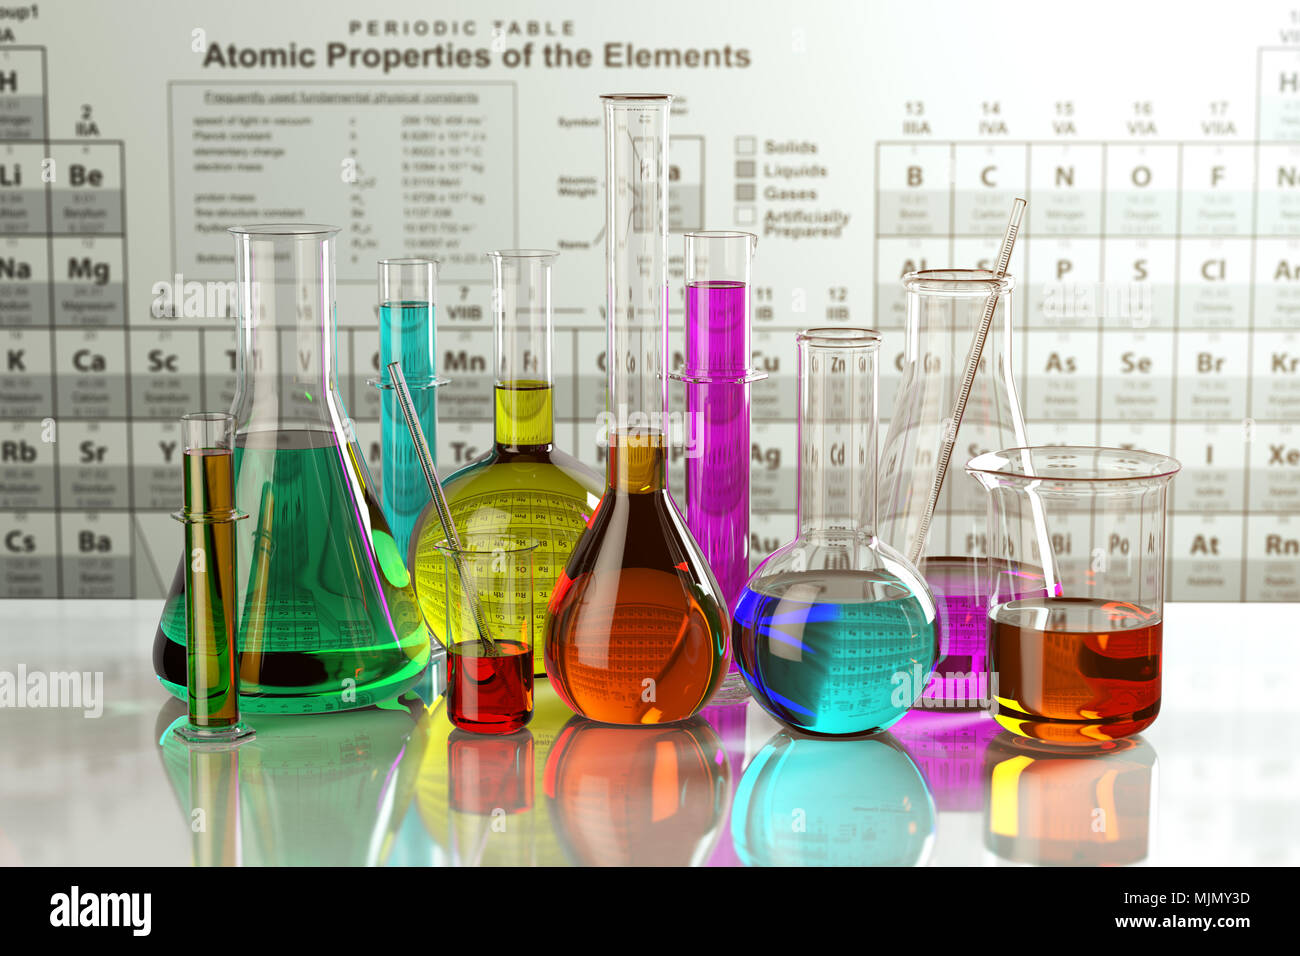 Test glass flasks and tubes with colored solutions on the periodic test glass flasks and tubes with colored solutions on the periodic table of elements laboratory glassware science chemistry and research concept 3d urtaz